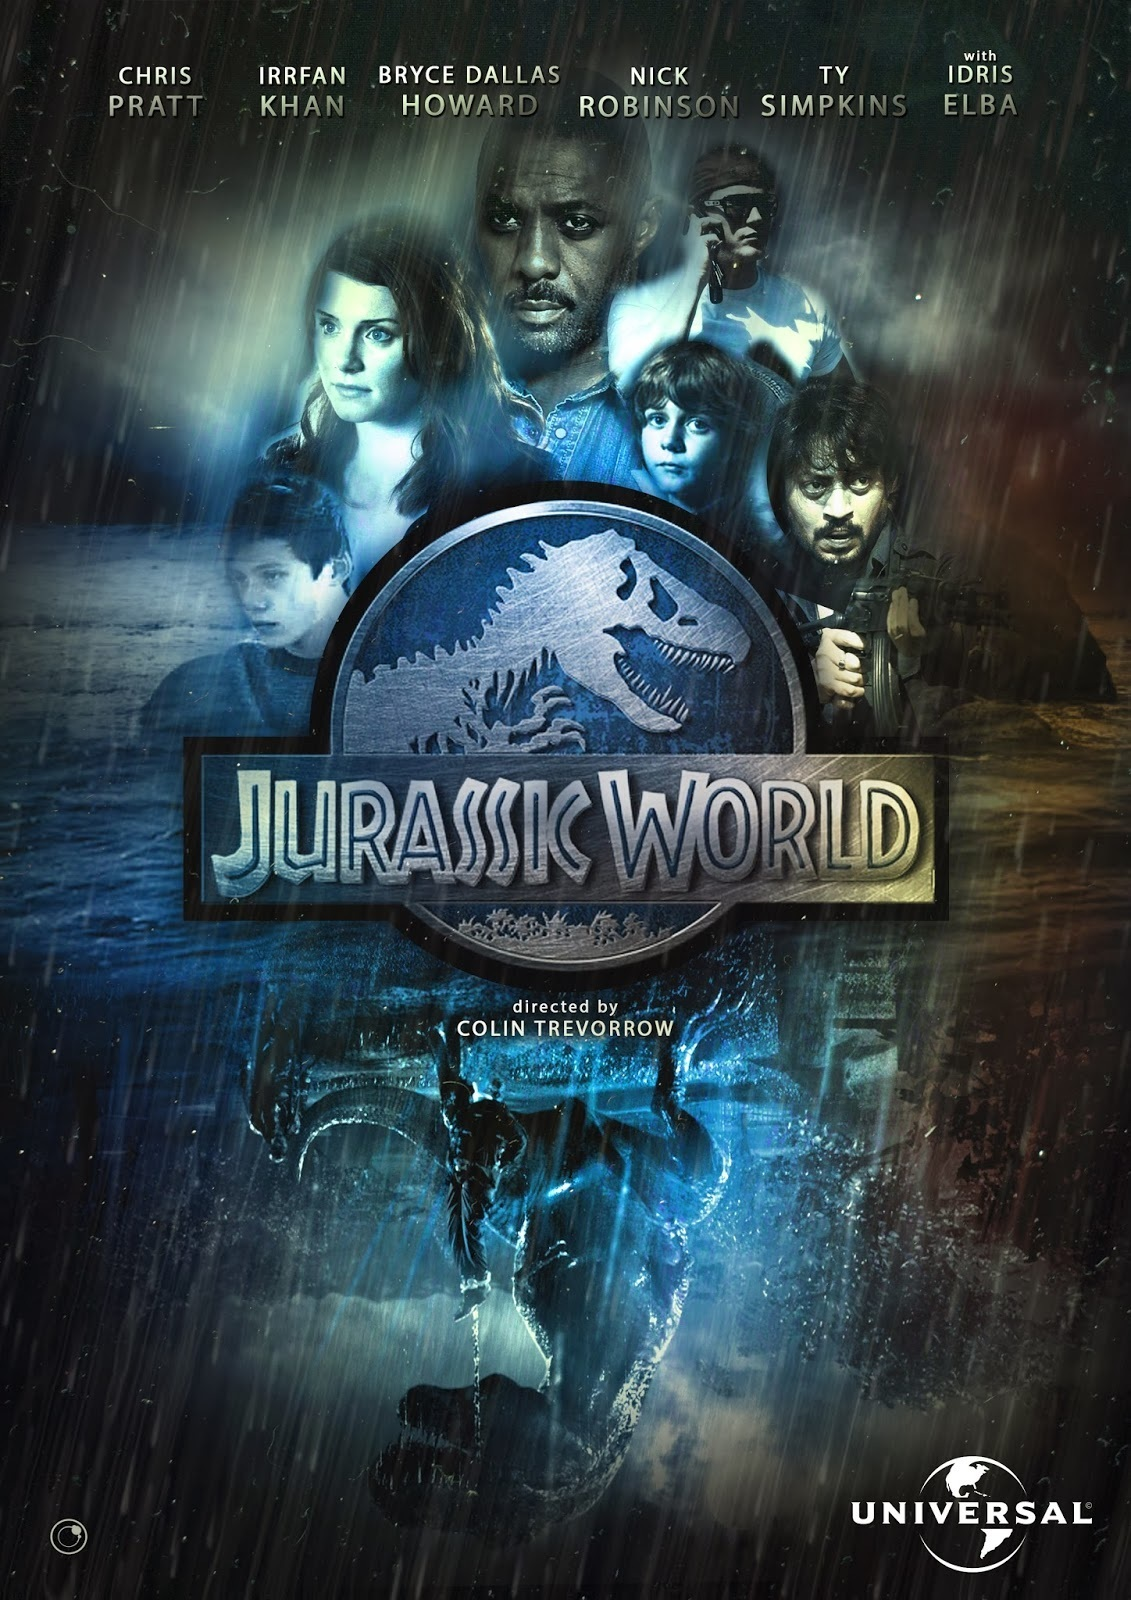 jurassic world movie review sillykhan 39 s blog. Black Bedroom Furniture Sets. Home Design Ideas